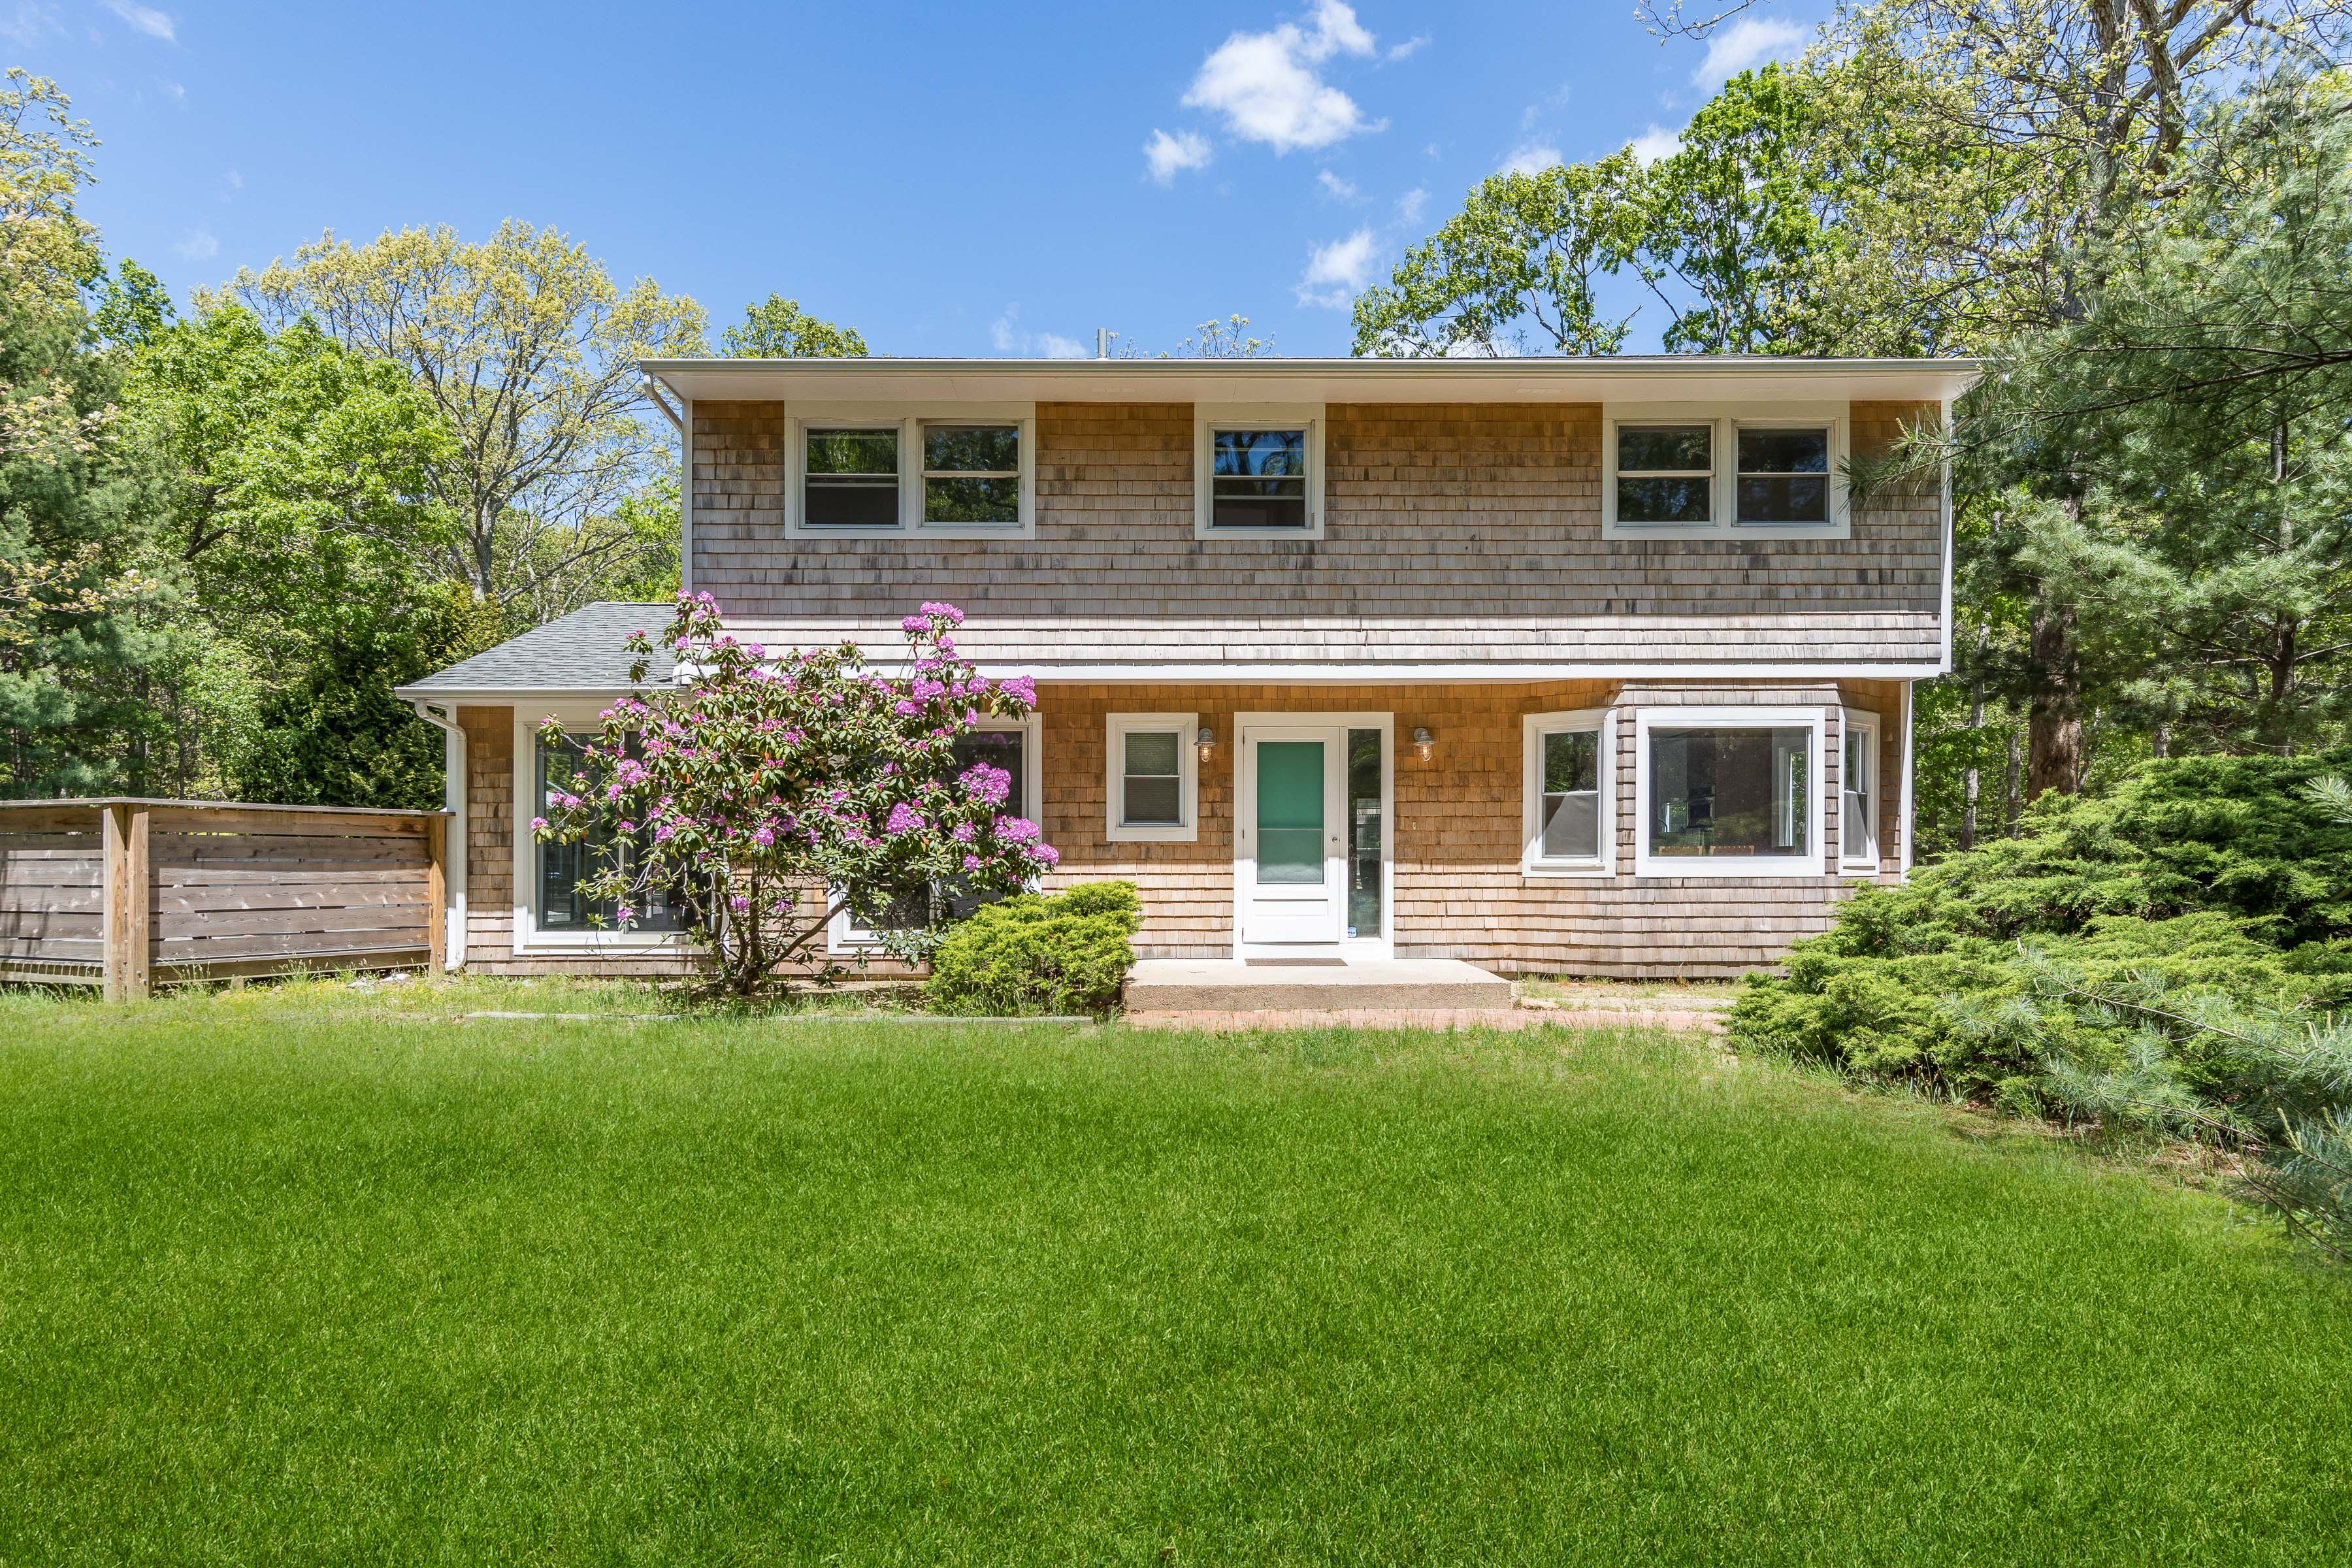 44 Woodpink Dr - East Hampton NW, New York